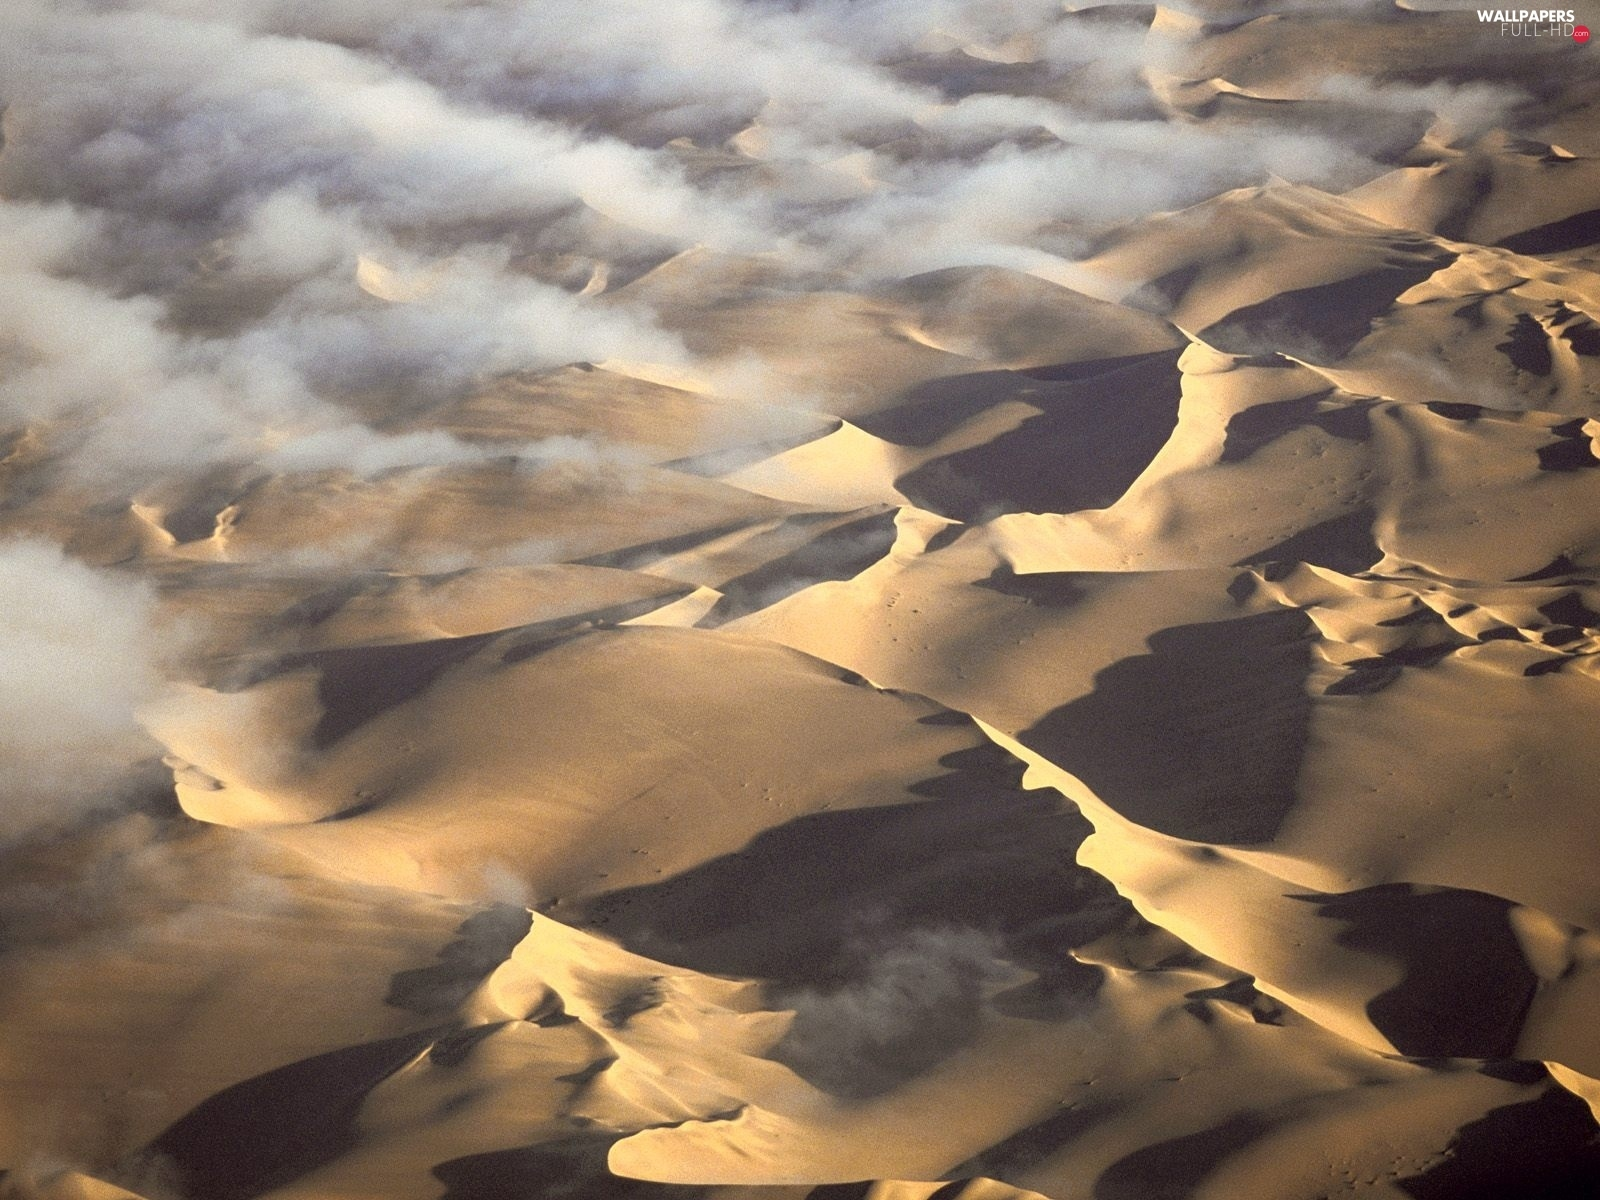 Desert, clouds, Namibia